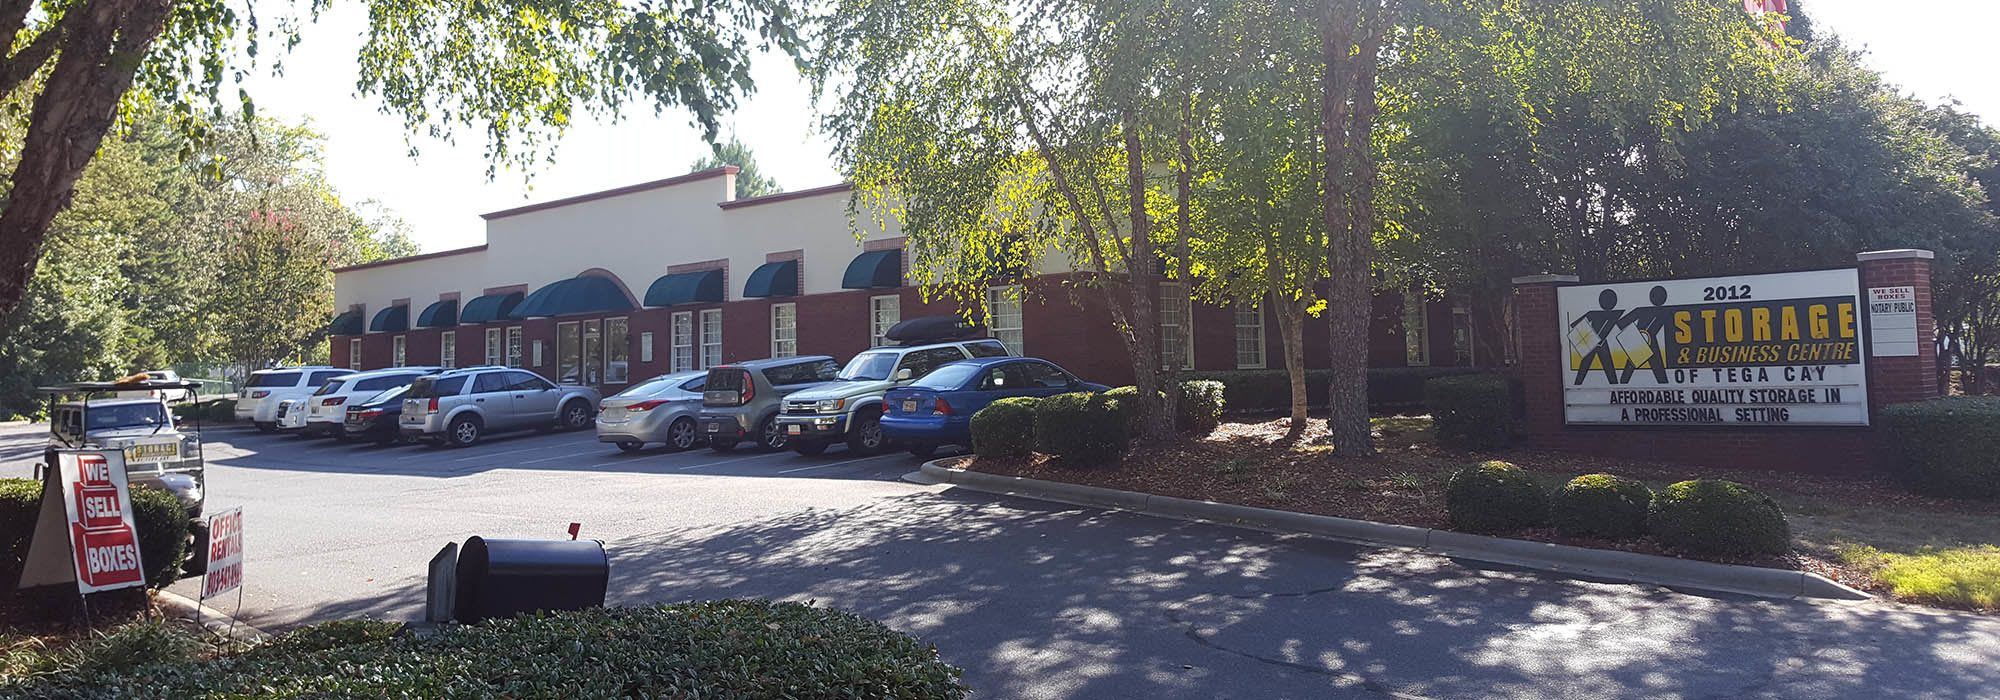 Self storage in Fort Mill SC